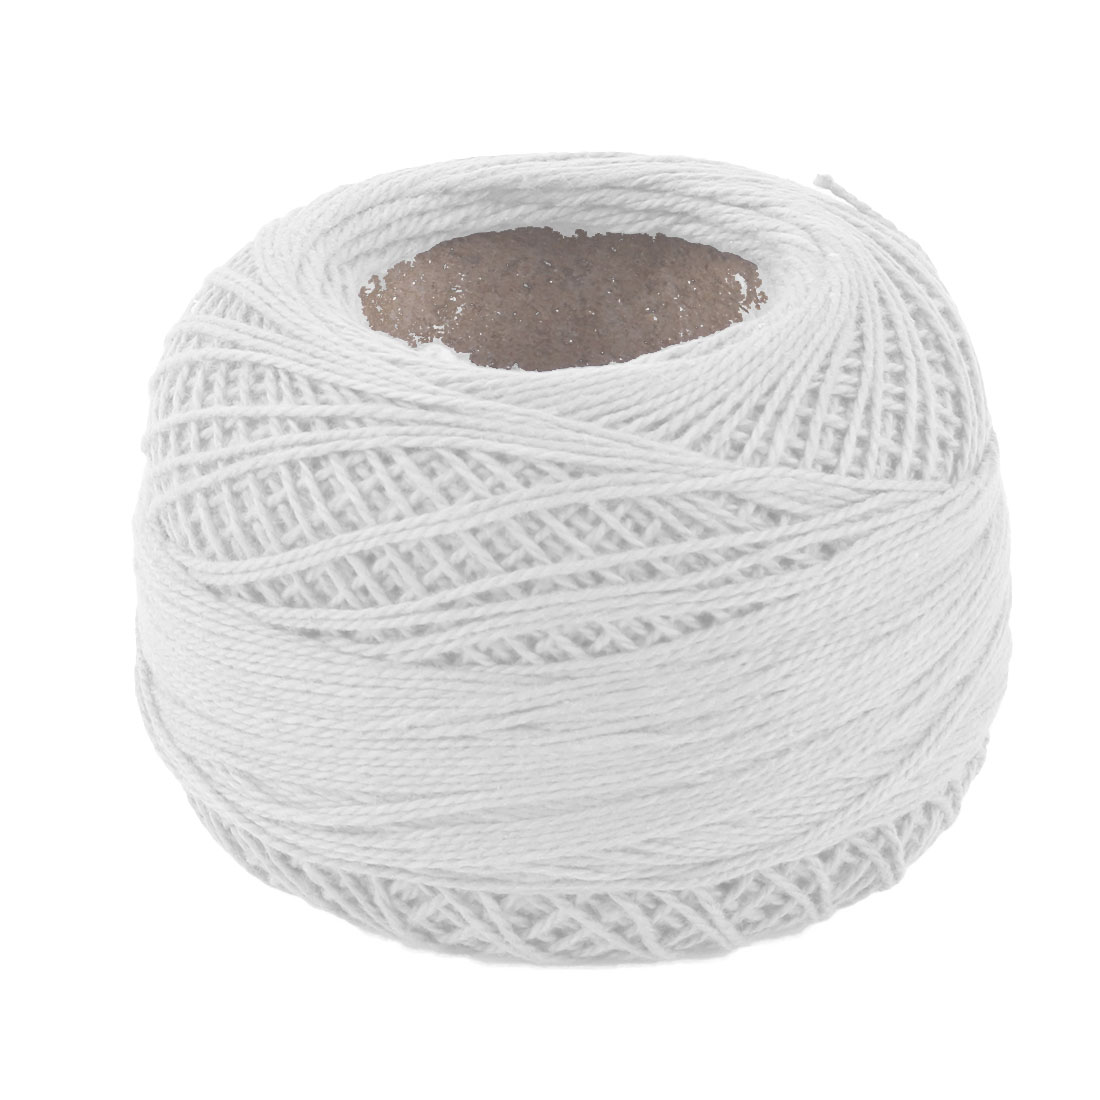 Household Cotton Blends Crochet Clothes Weaving Knitting Yarn Cord Off White 60g - image 1 of 1